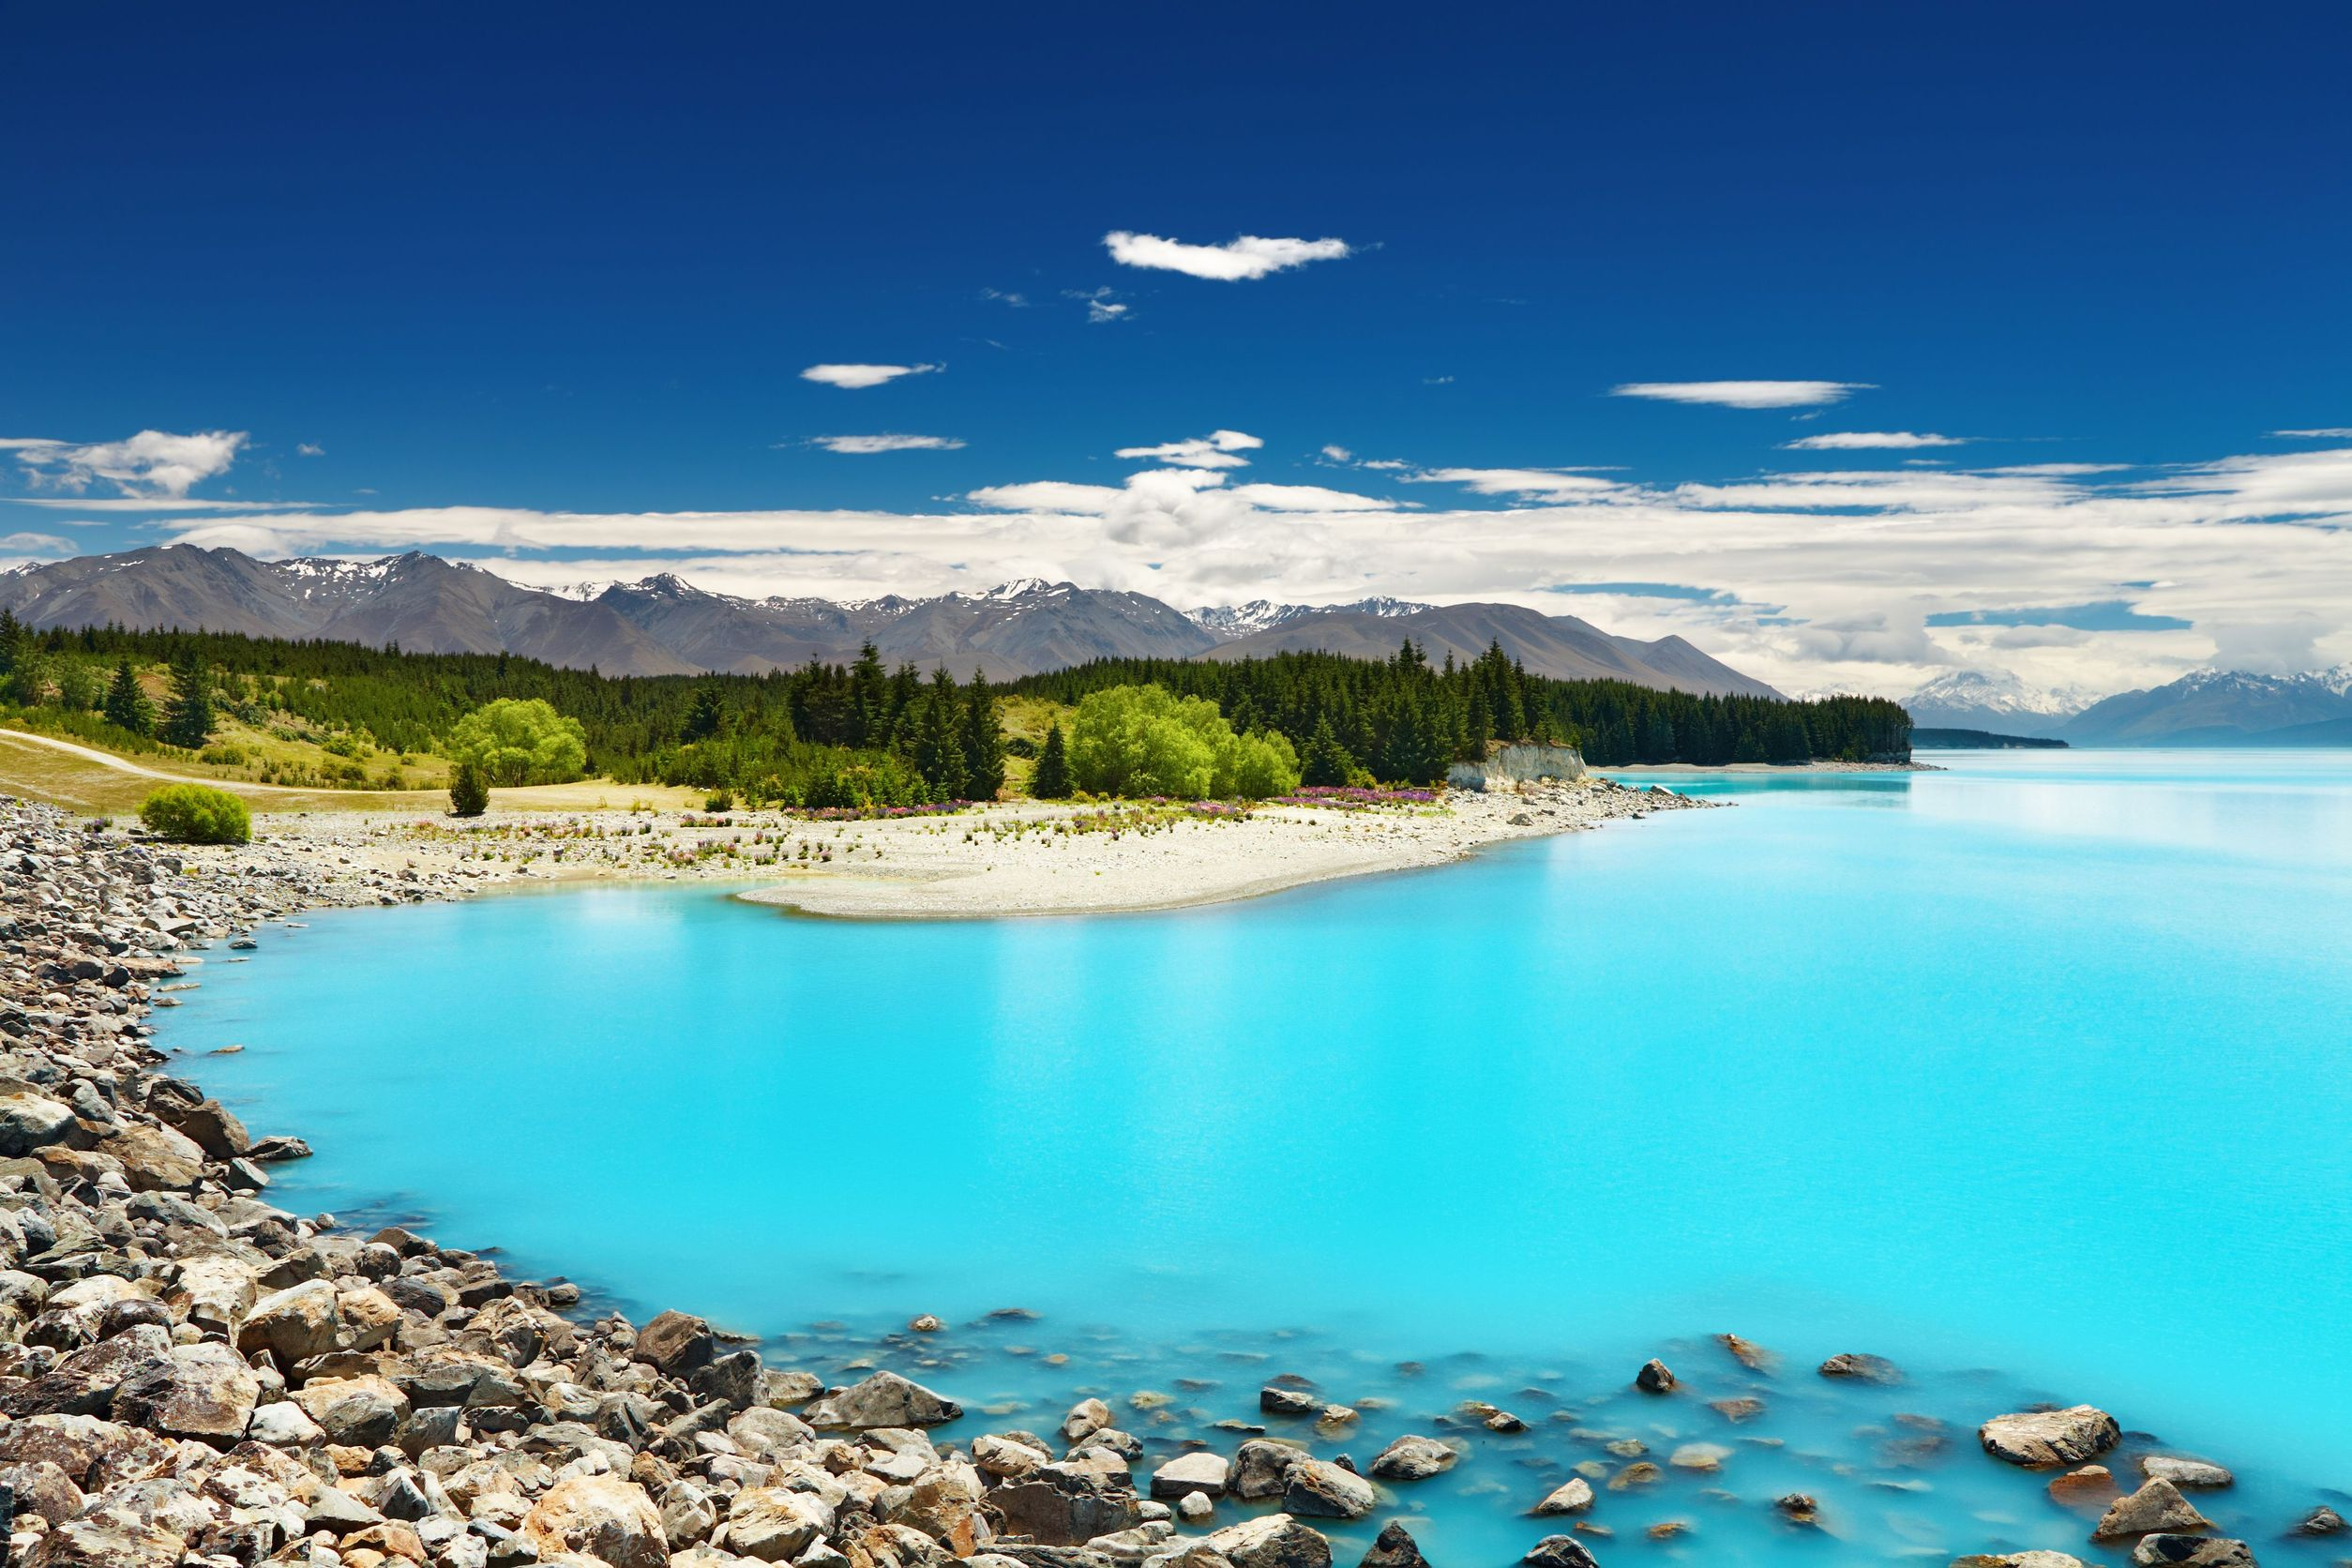 new zealand pure blue lake 123rf